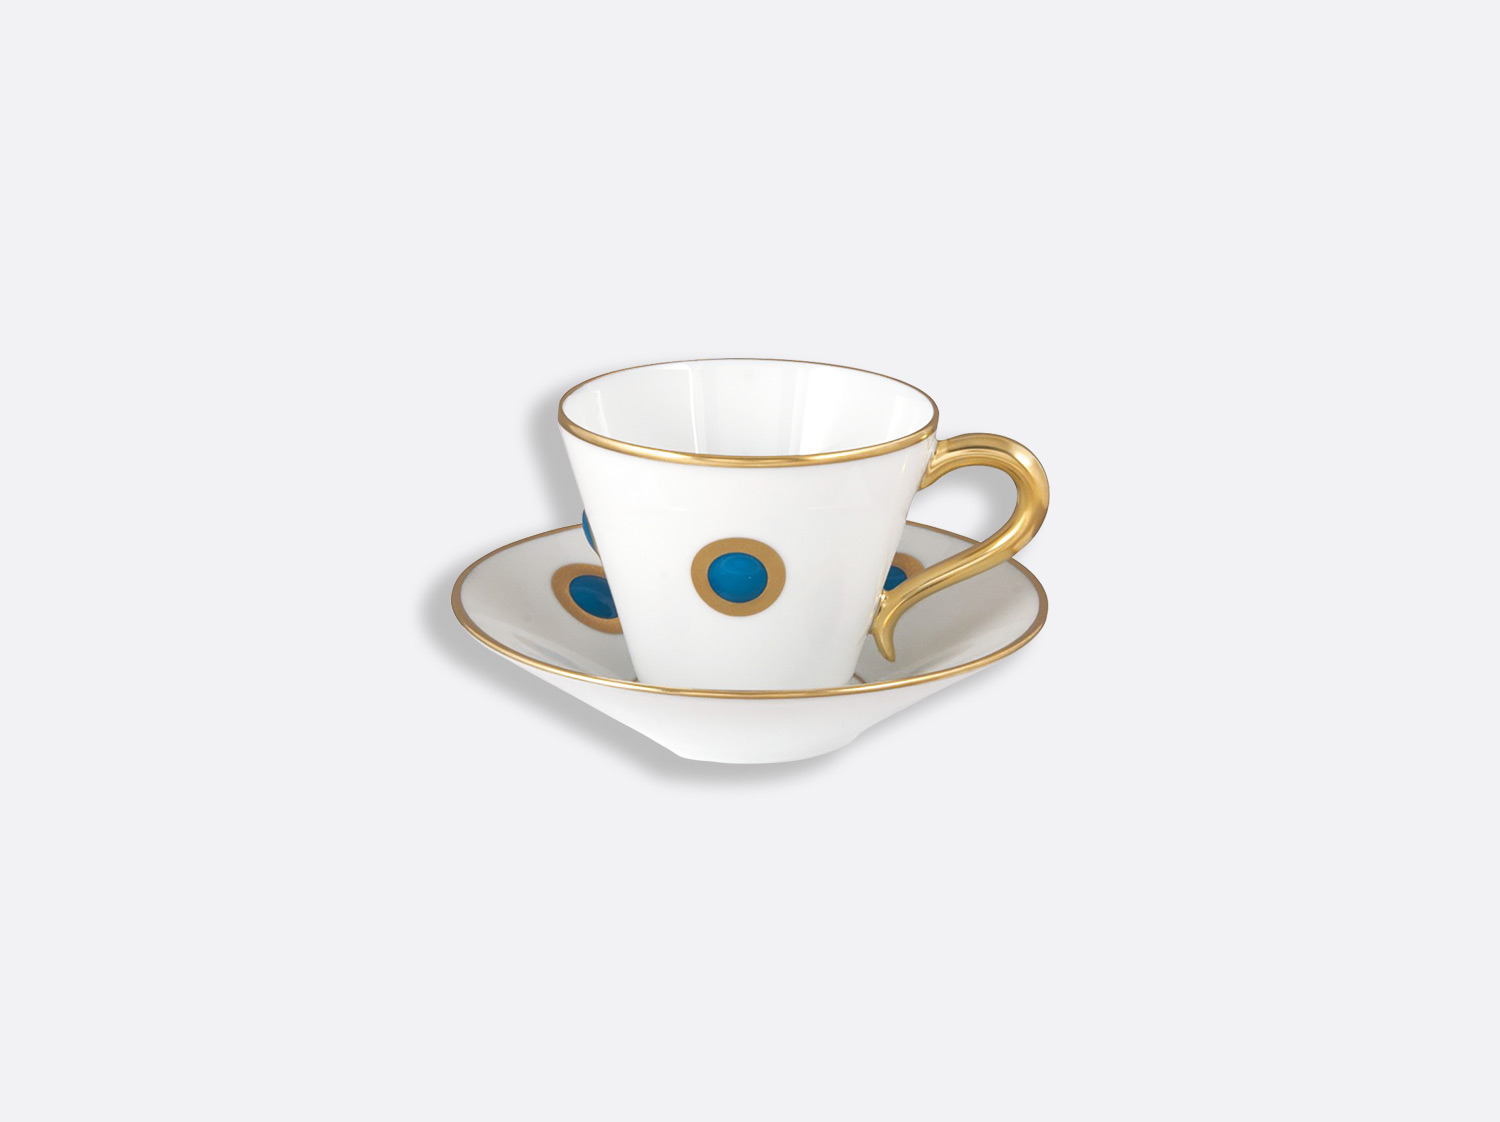 China Espresso cup and saucer 4.4 oz of the collection Ithaque bleu indien | Bernardaud